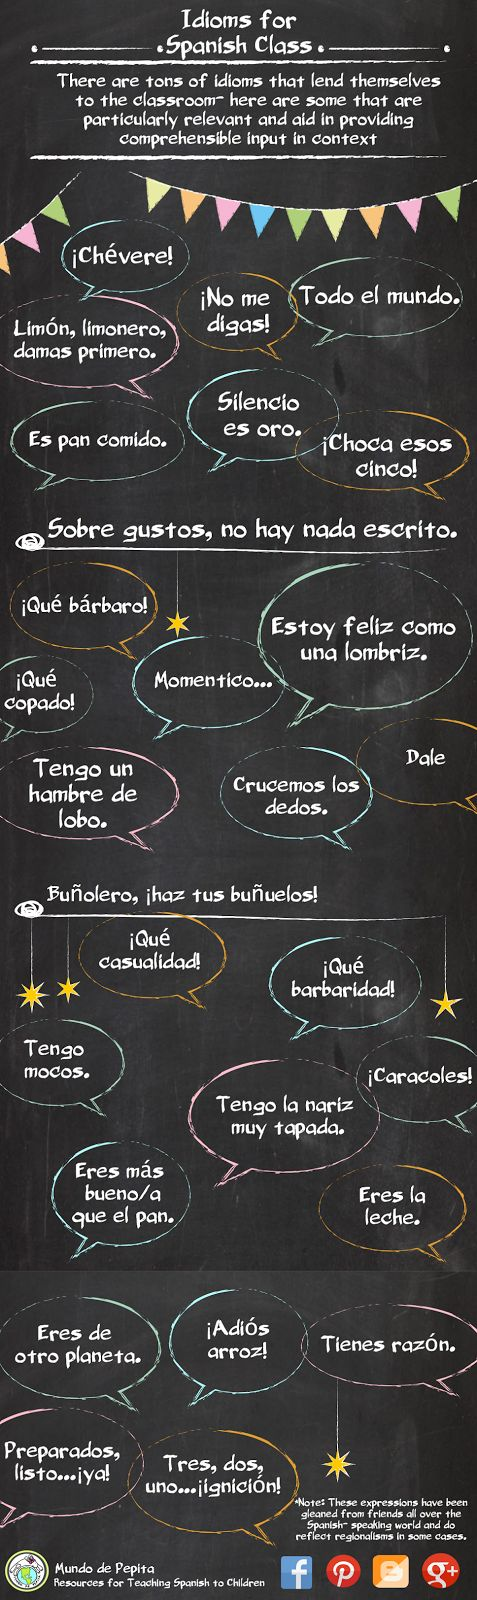 A blog featuring activities and resources for teaching Spanish to kids in the elementary school.